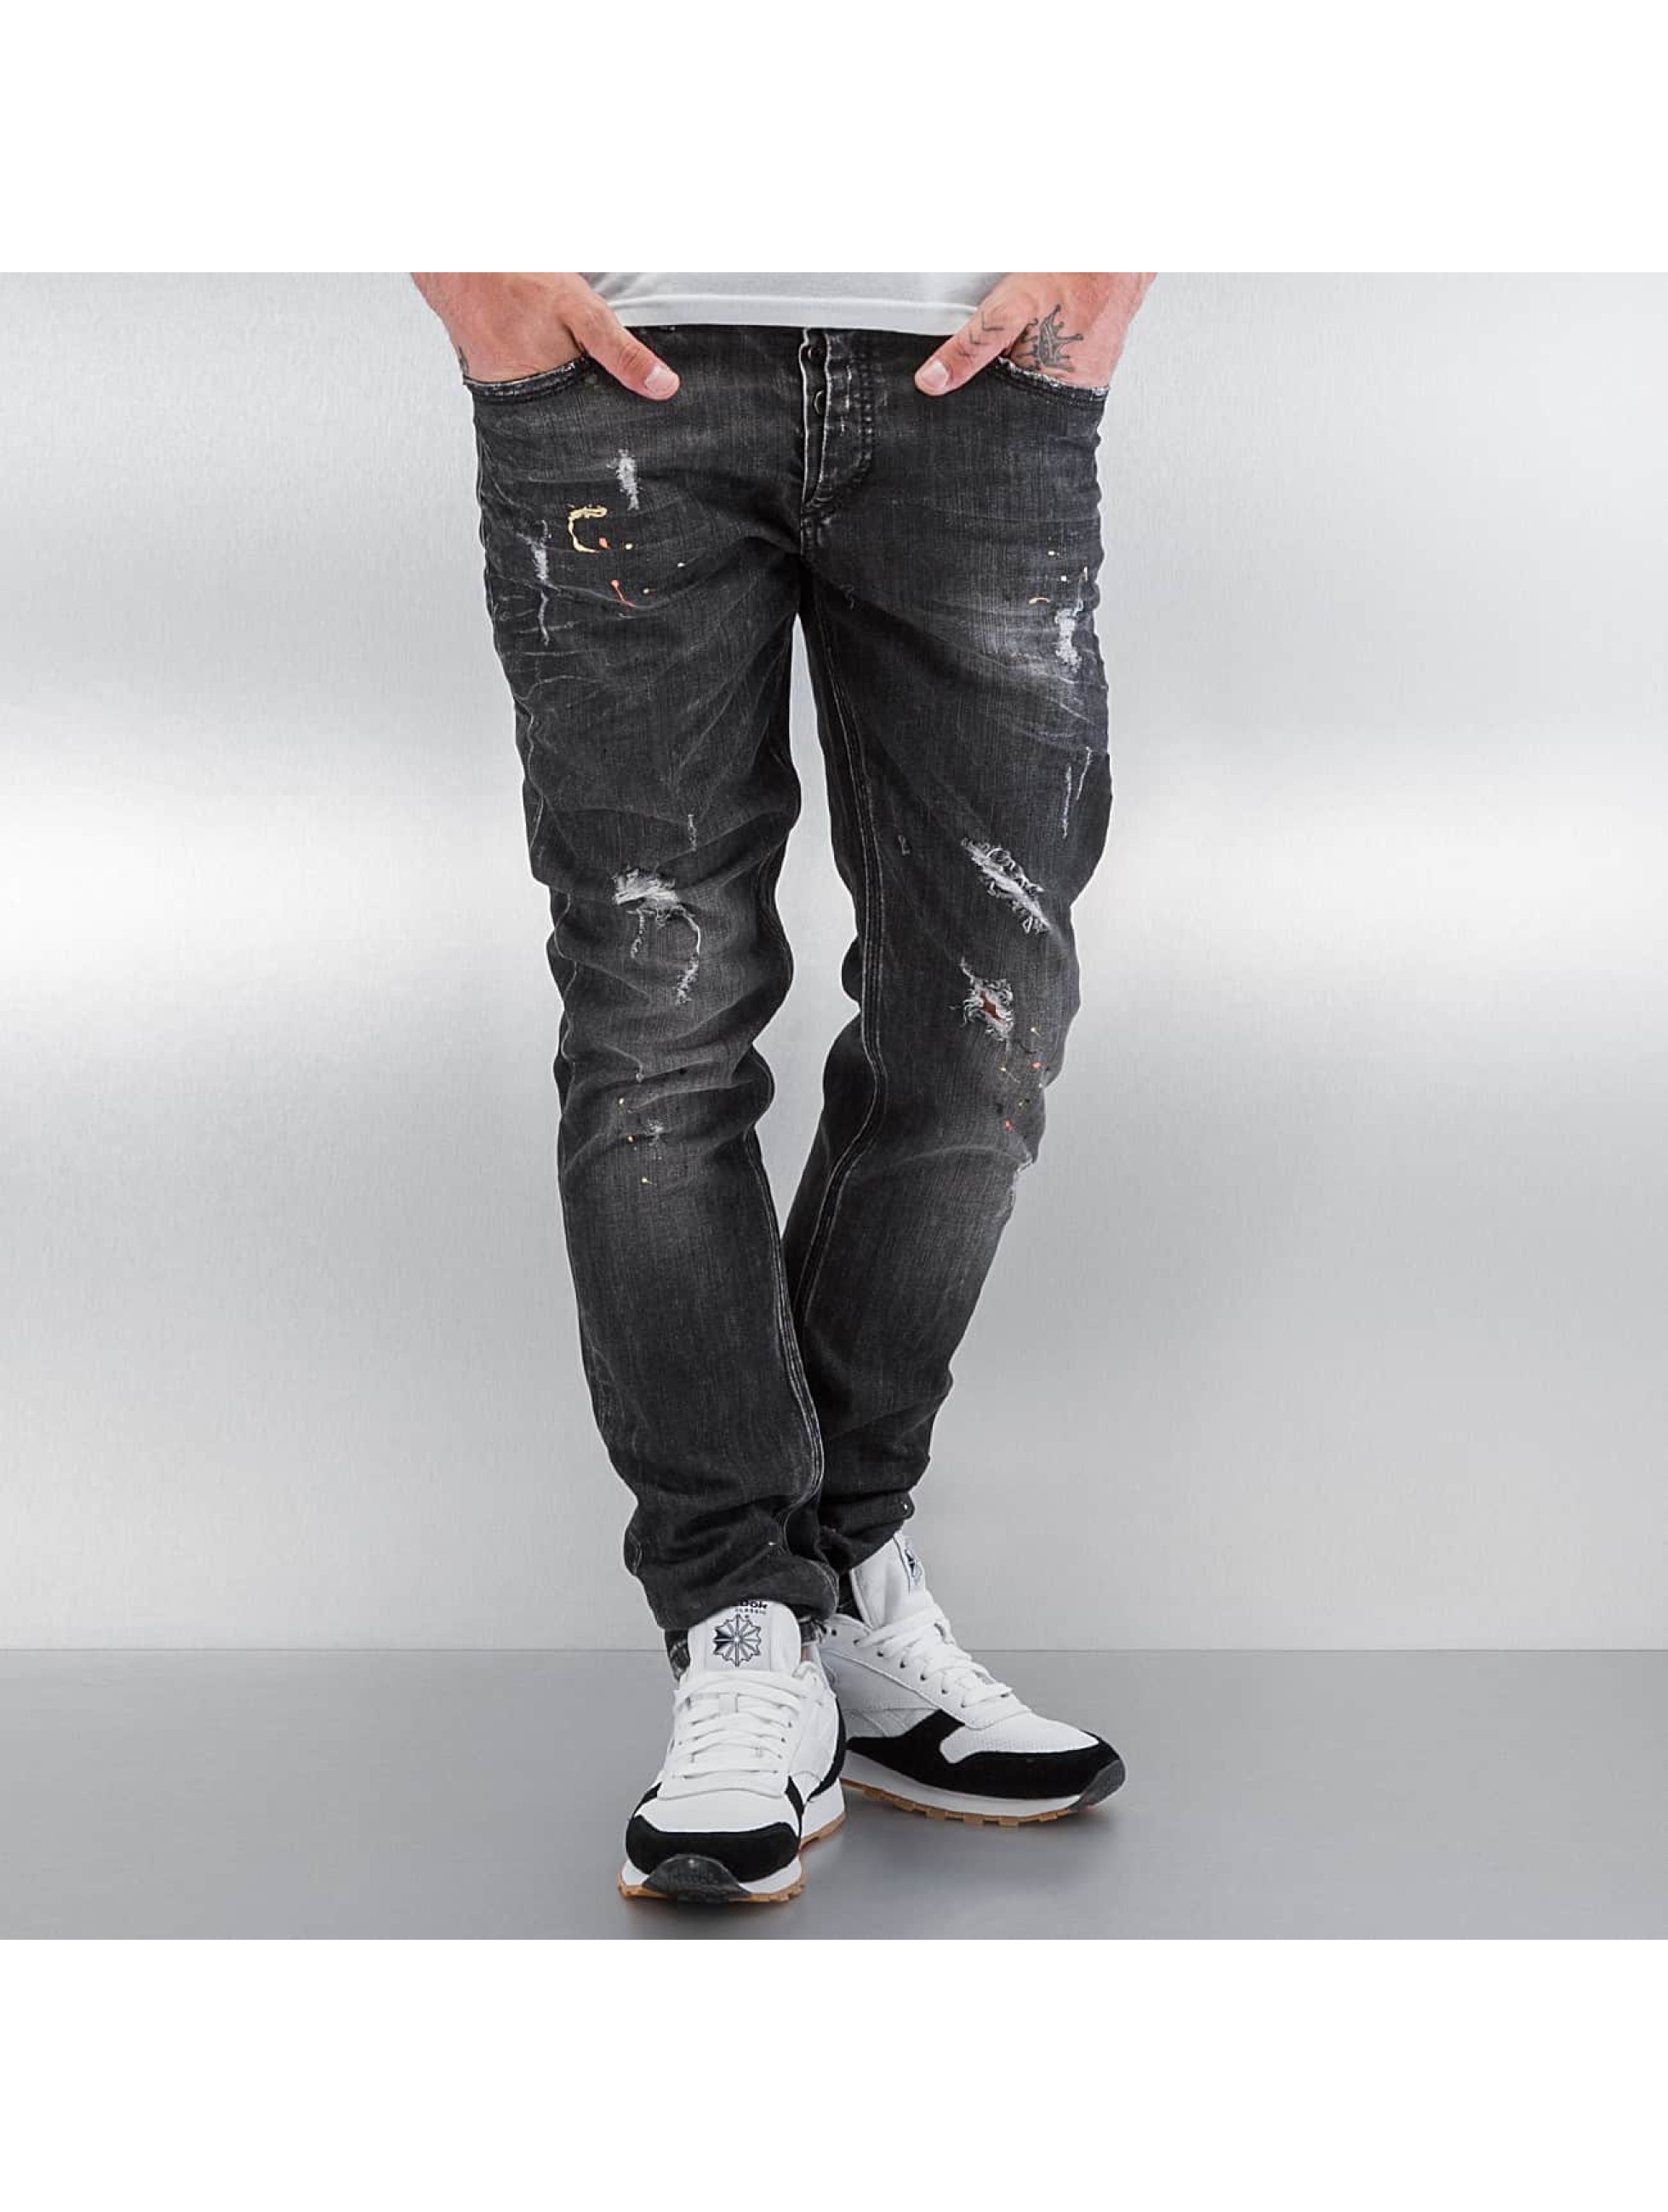 Pascucci-Uomini-Jeans-Jeans-straight-fit-Purs